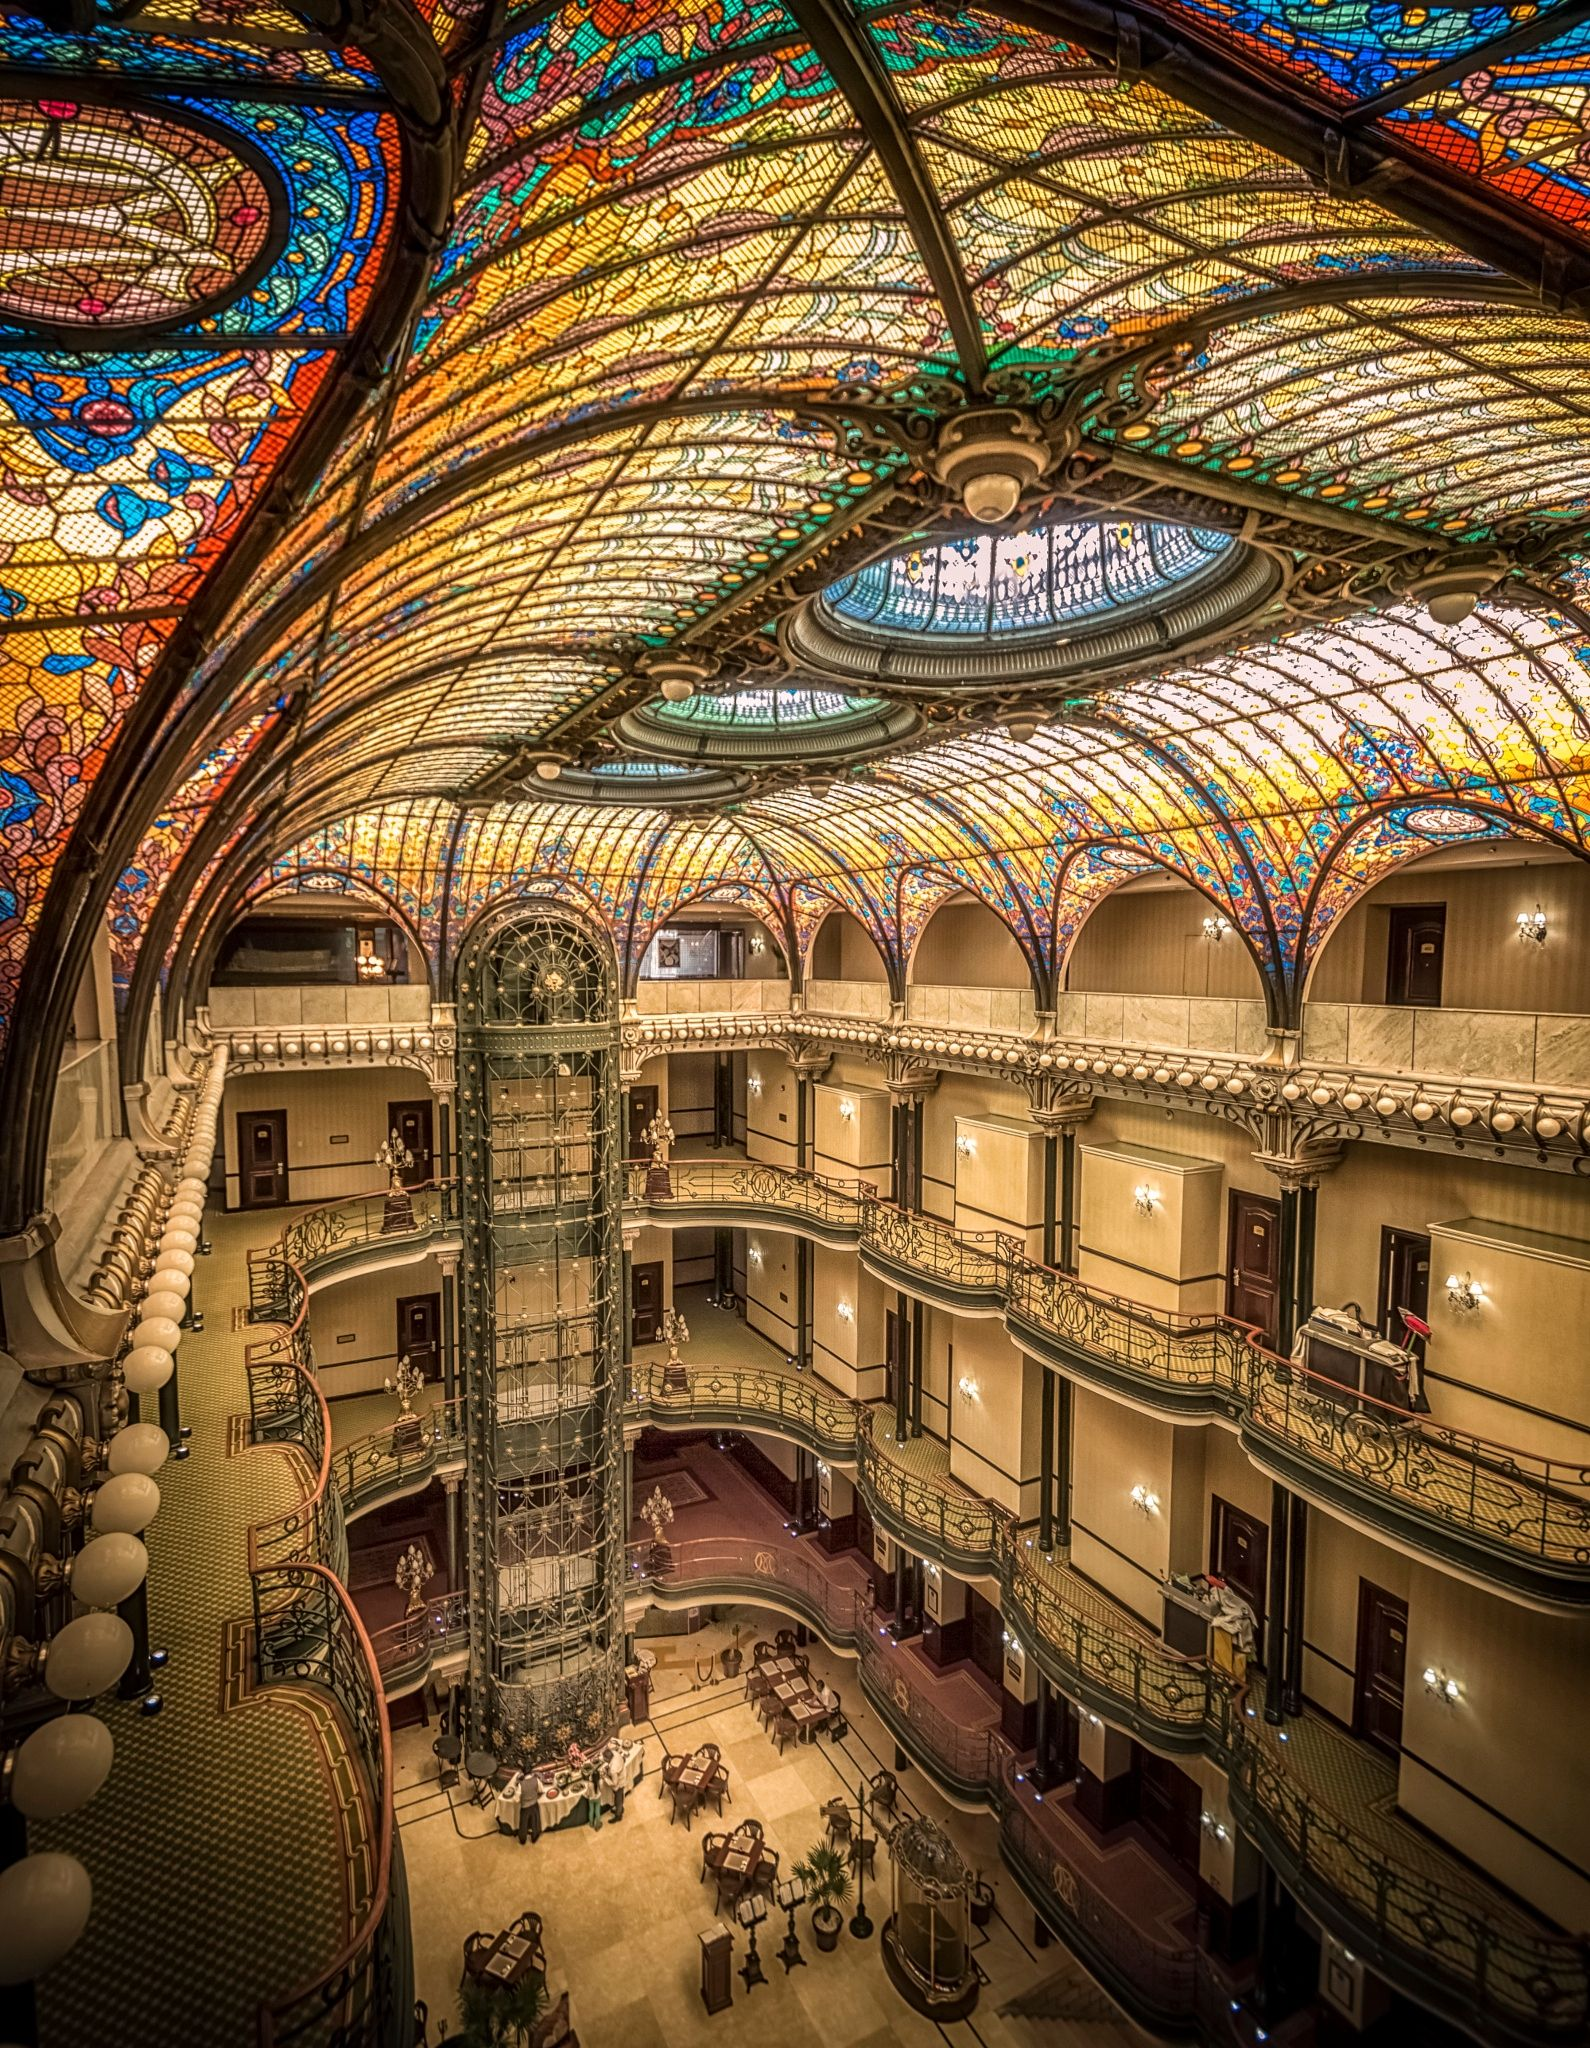 Gran Hotel The Art Noveau Style Hotel Gran Hotel Ciudad De Mexico In Mexico City The Beau Art Nouveau Architecture Stained Glass Windows Beautiful Buildings